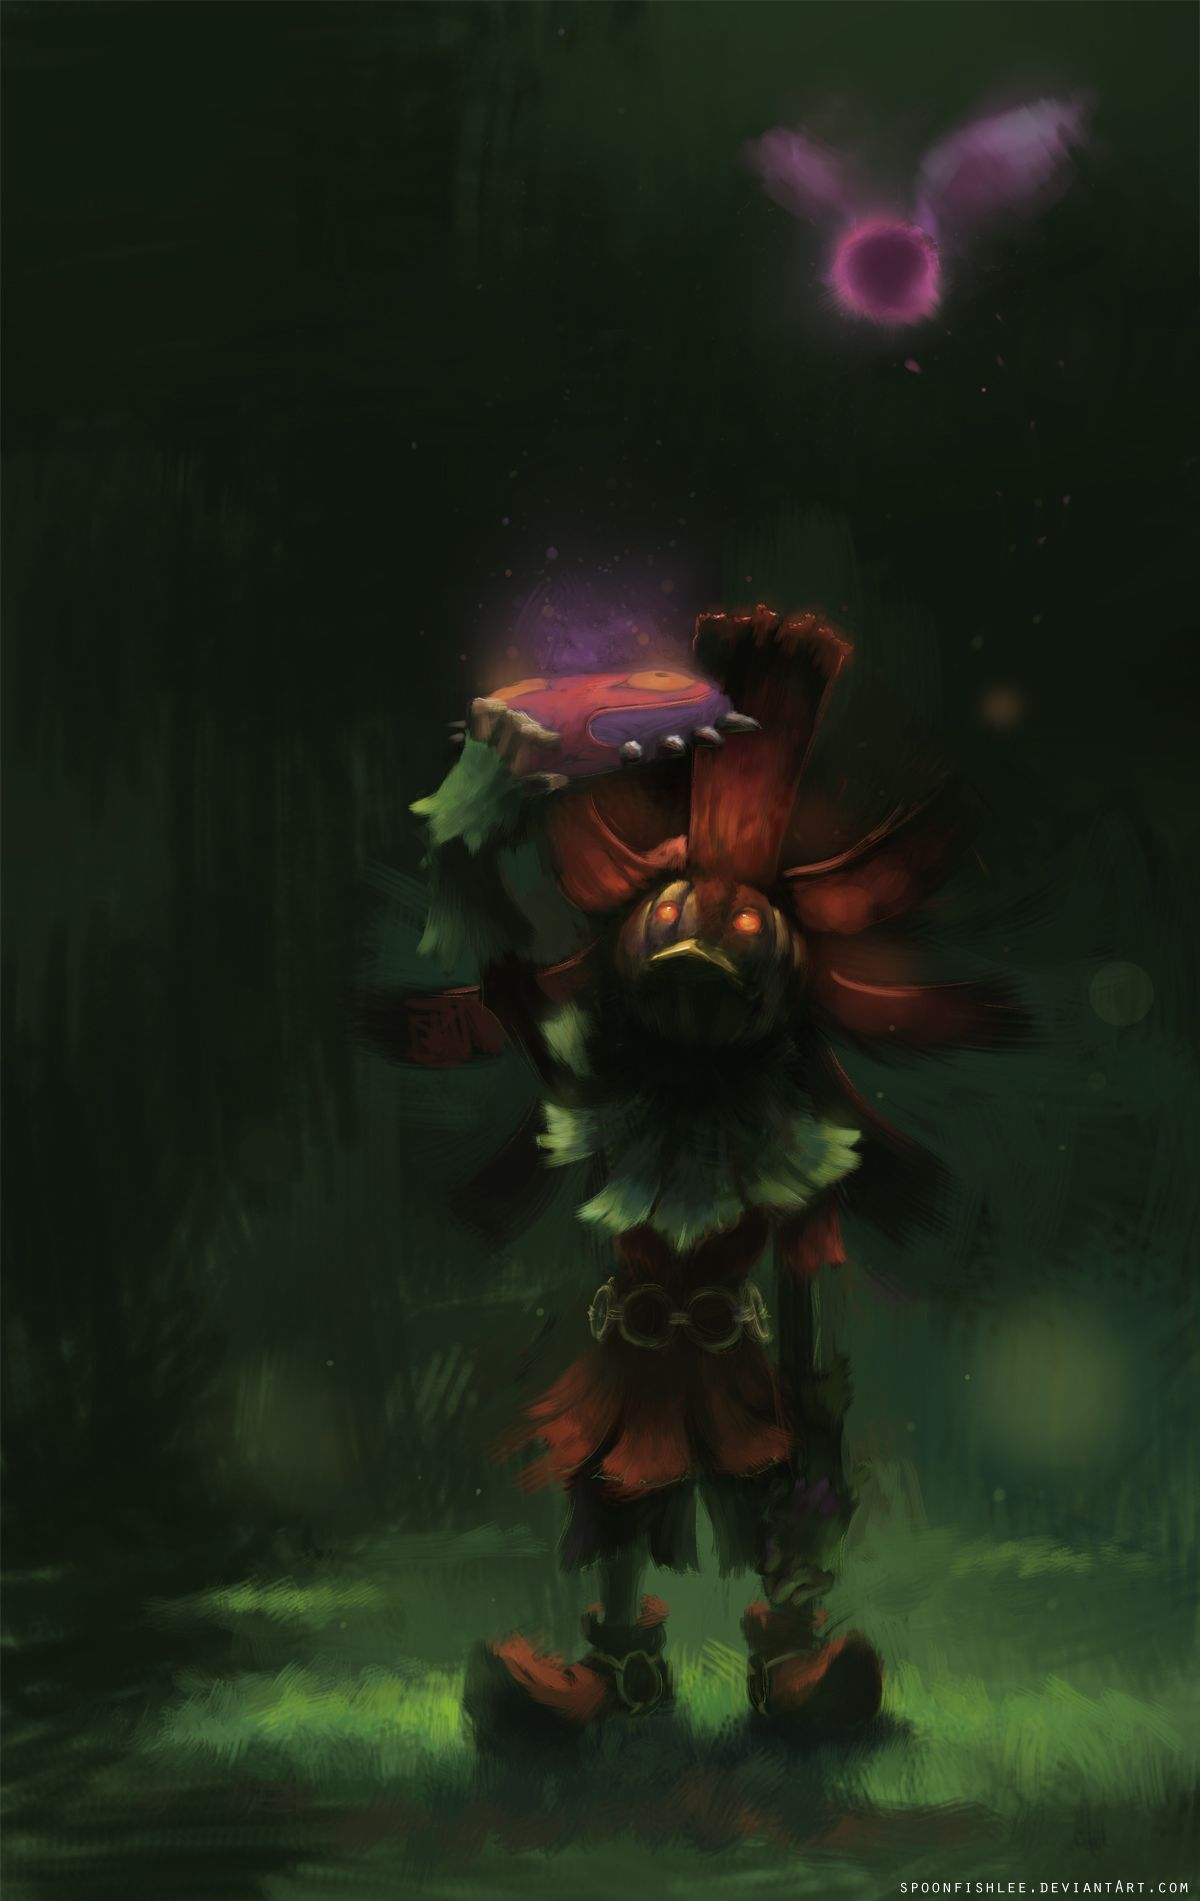 Skull Kid Majoras Mask By SpoonfishLeedeviantart On DeviantART